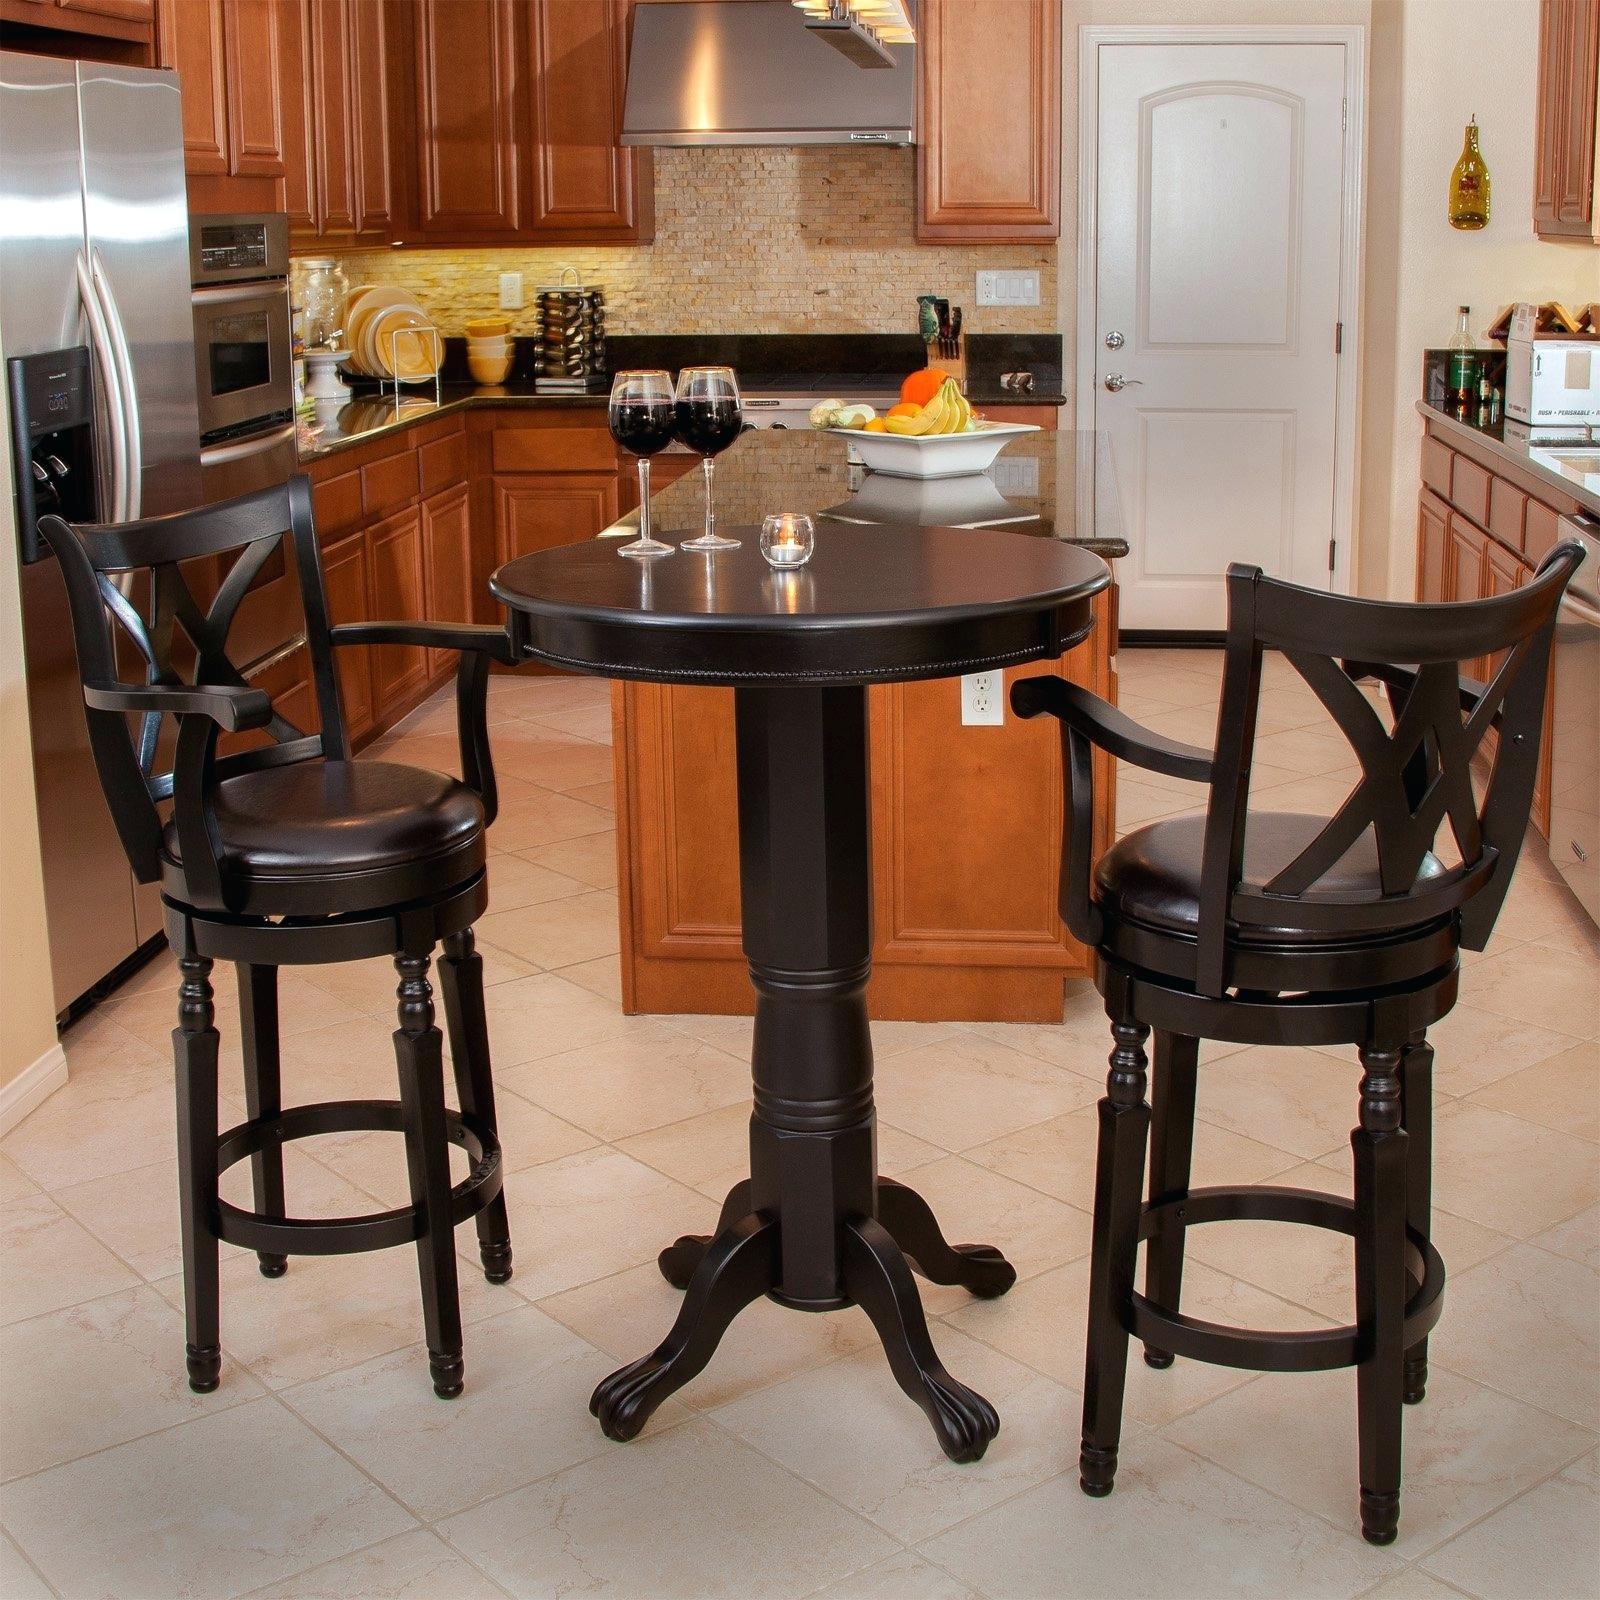 Oak Pub Tables Sets – Table Design Ideas Intended For 2017 Autberry 5 Piece Dining Sets (Image 15 of 20)